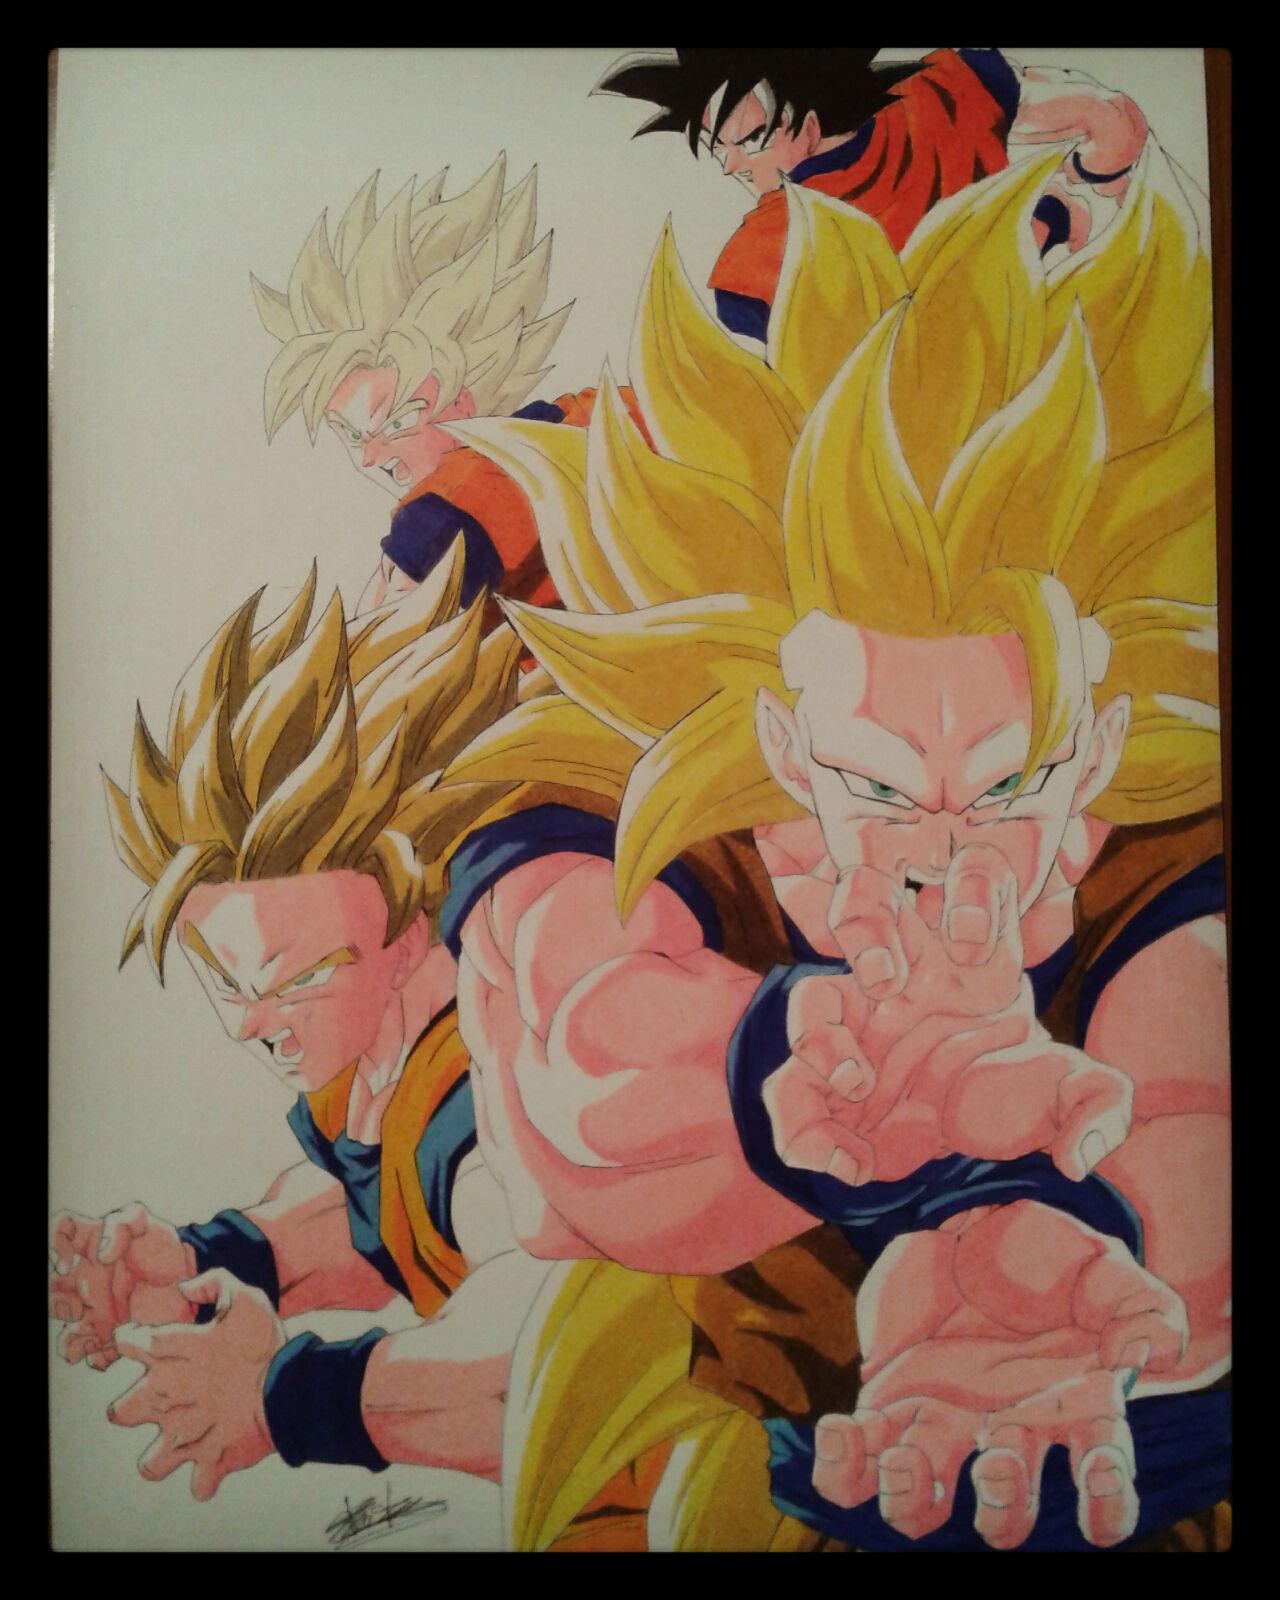 1280x1600 Prismacolor Colored Pencil Drawing Of Goku Normal To Ssj3. Speed